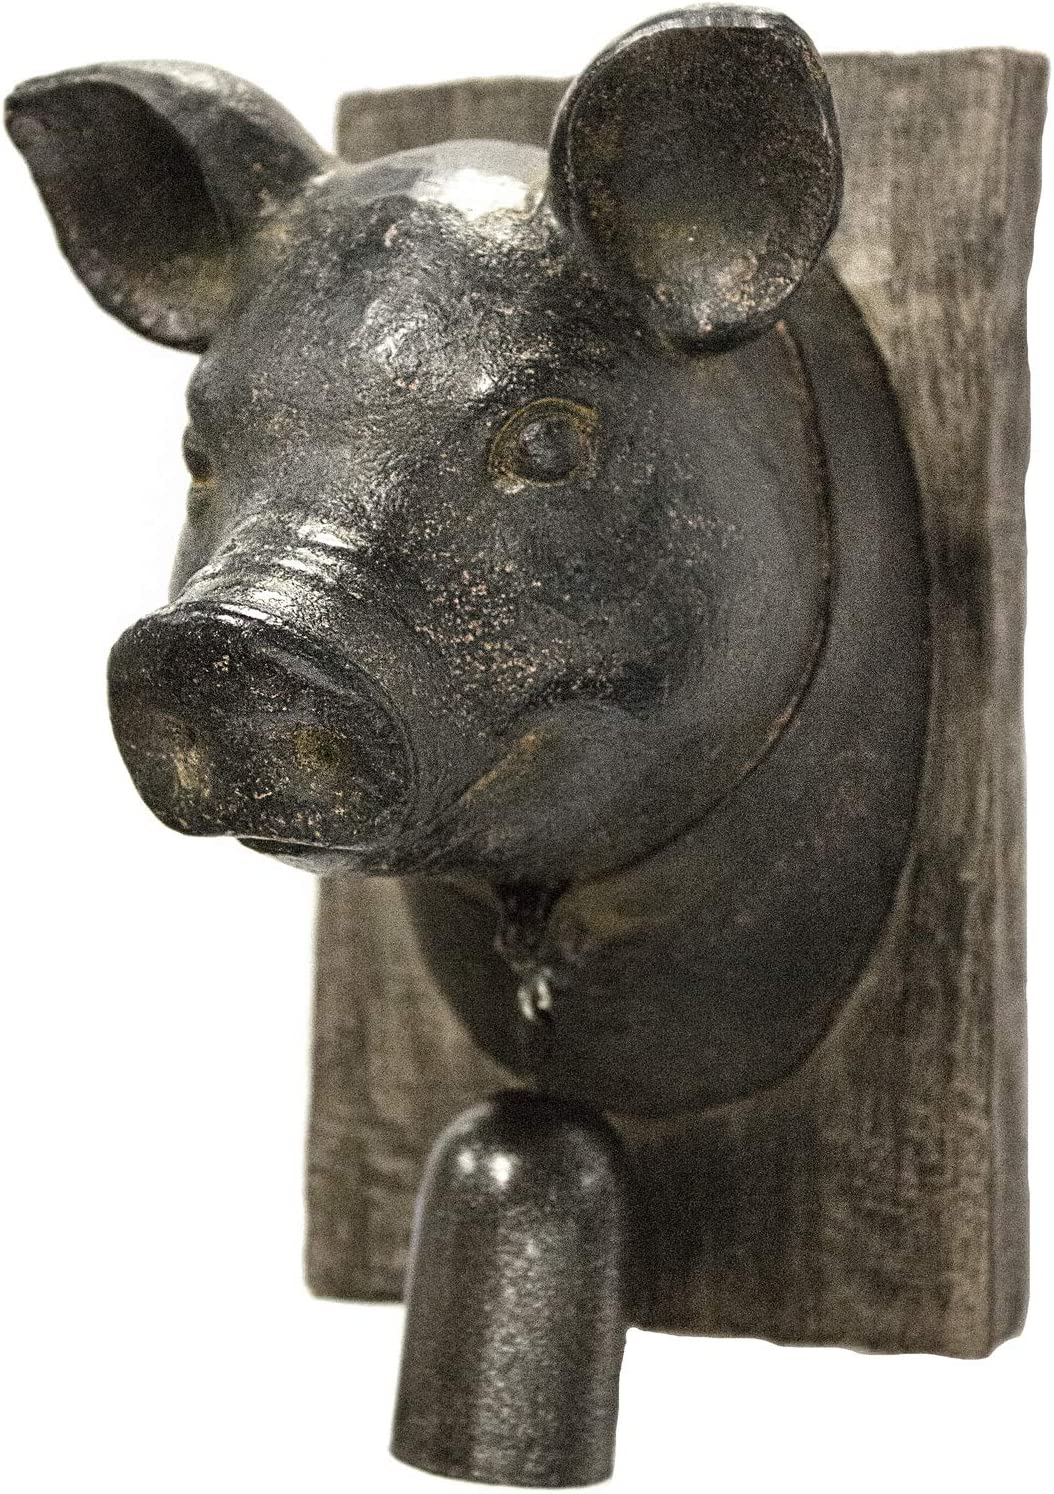 Sagebrook Home 11139 Pig Head W/Bell Wall Plaque, Rust Polyresin, 5.75 x 4.5 x 7.5 Inches